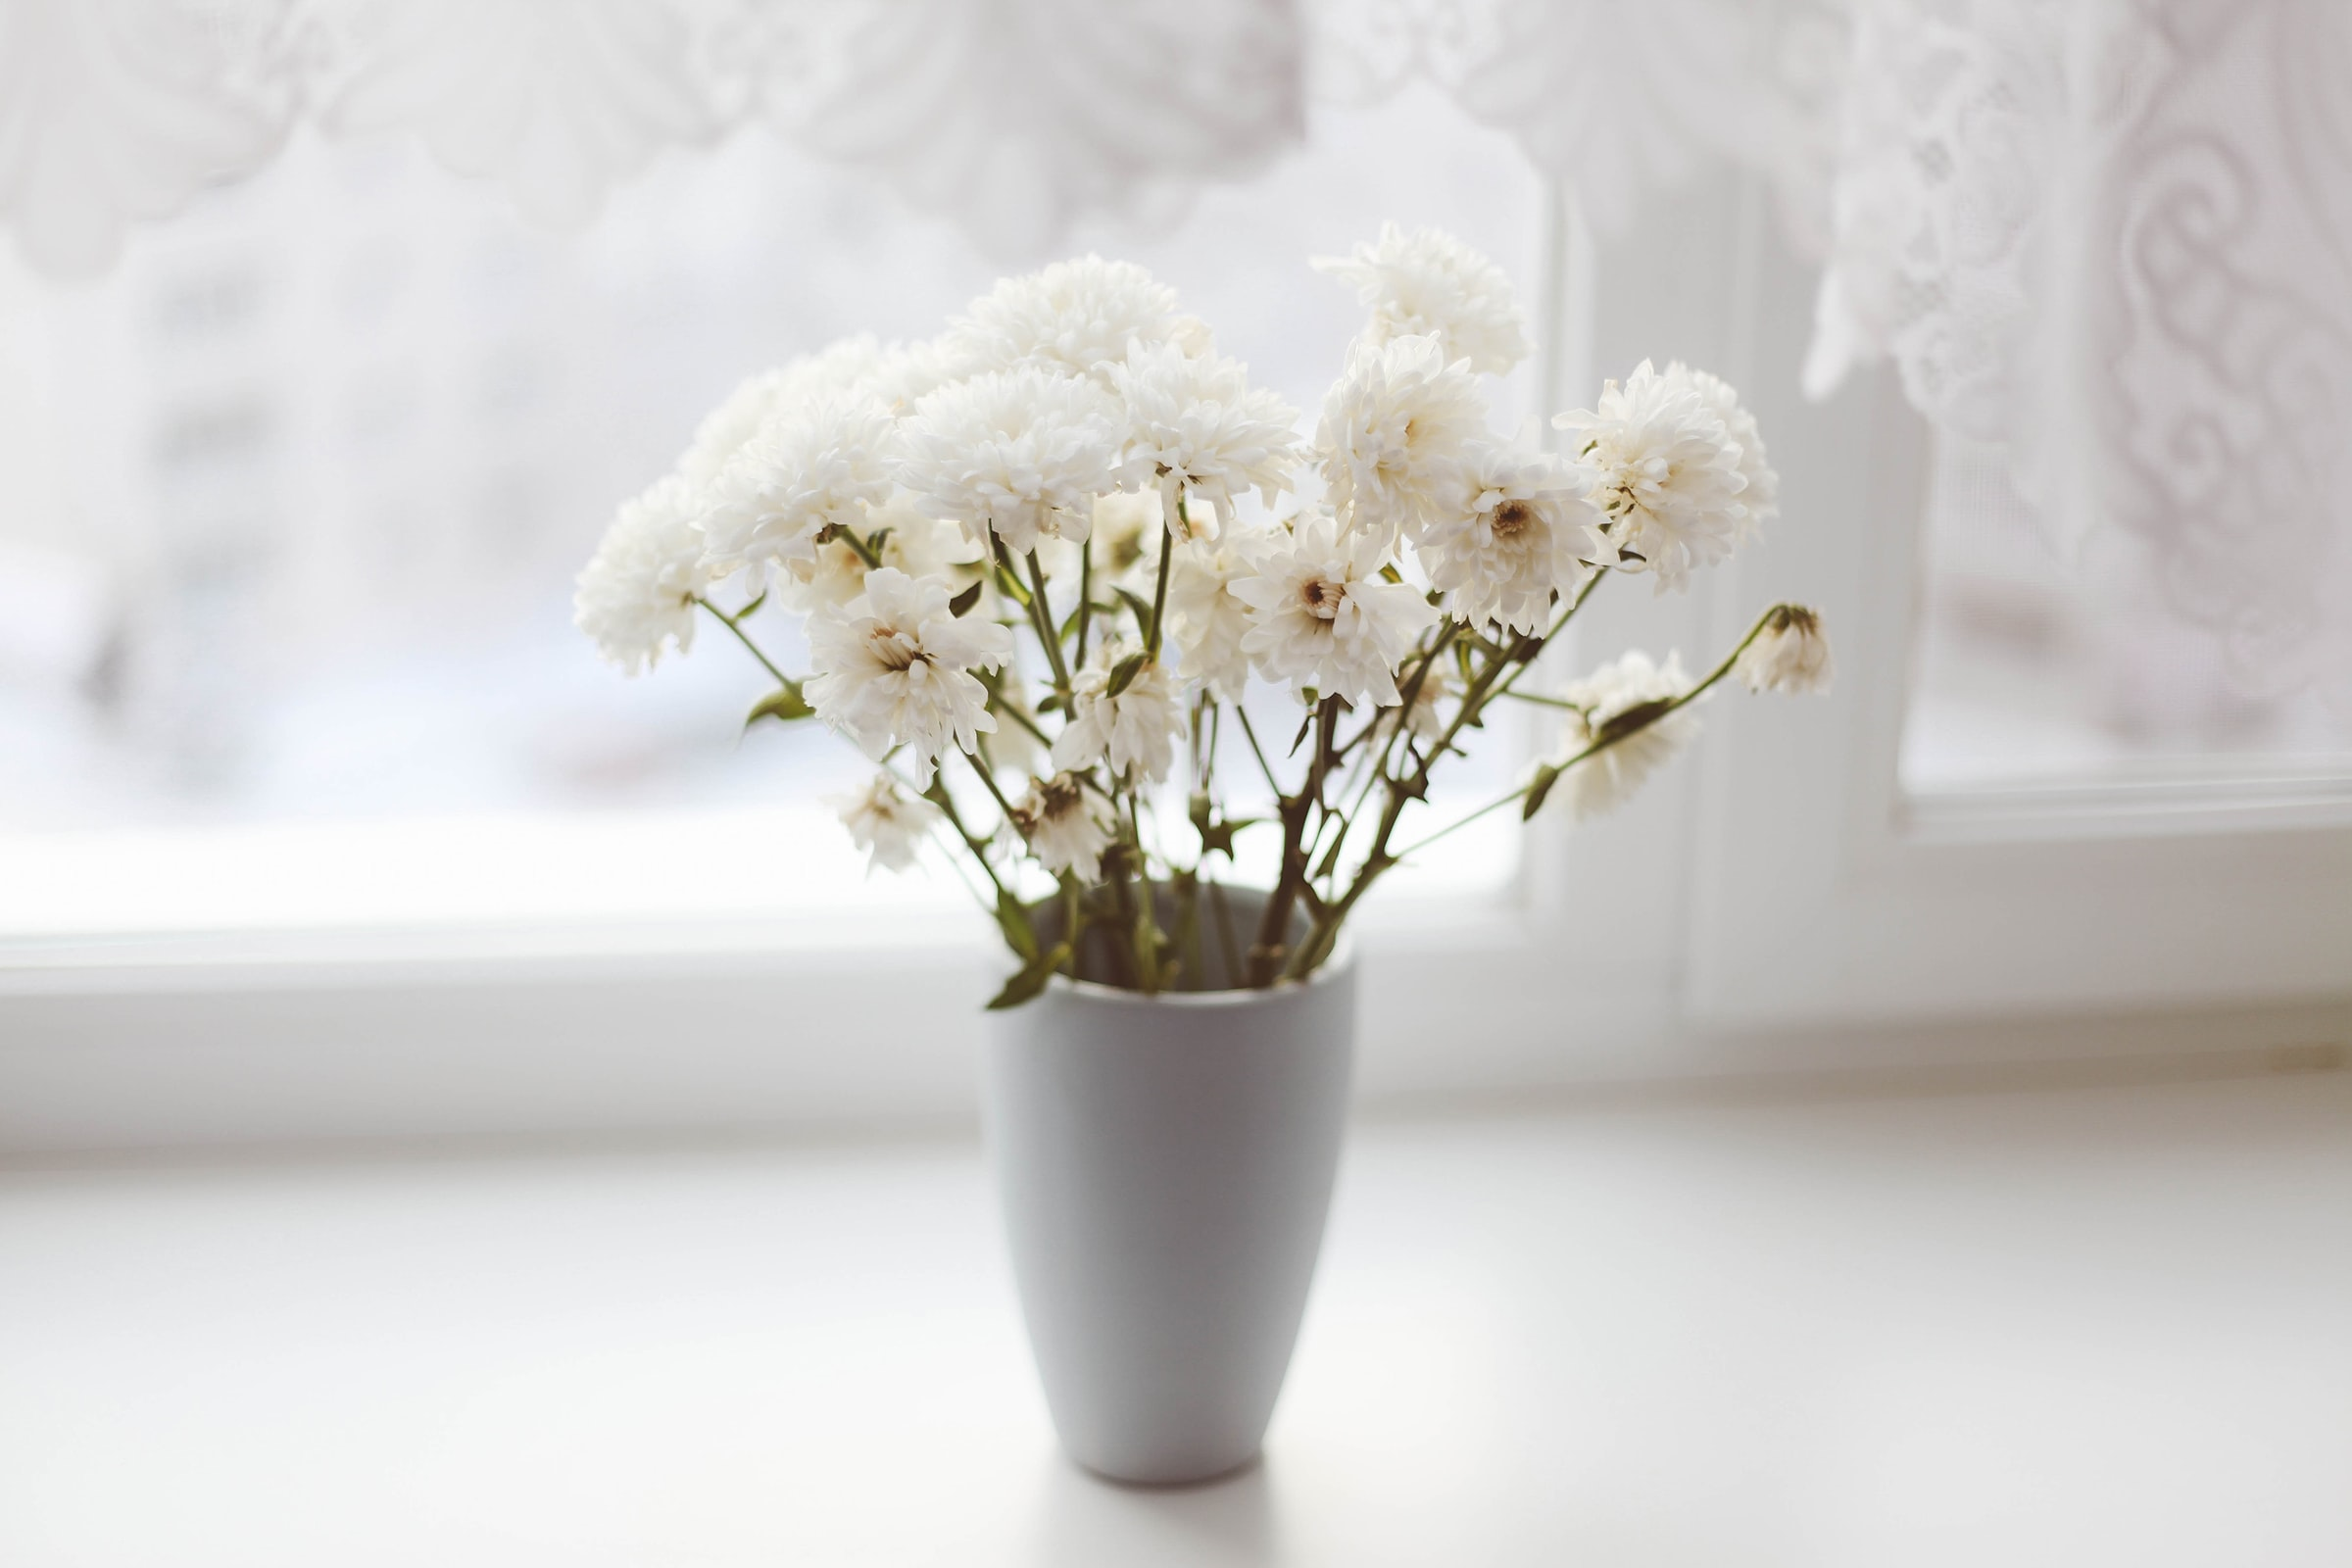 white petaled flower in vase